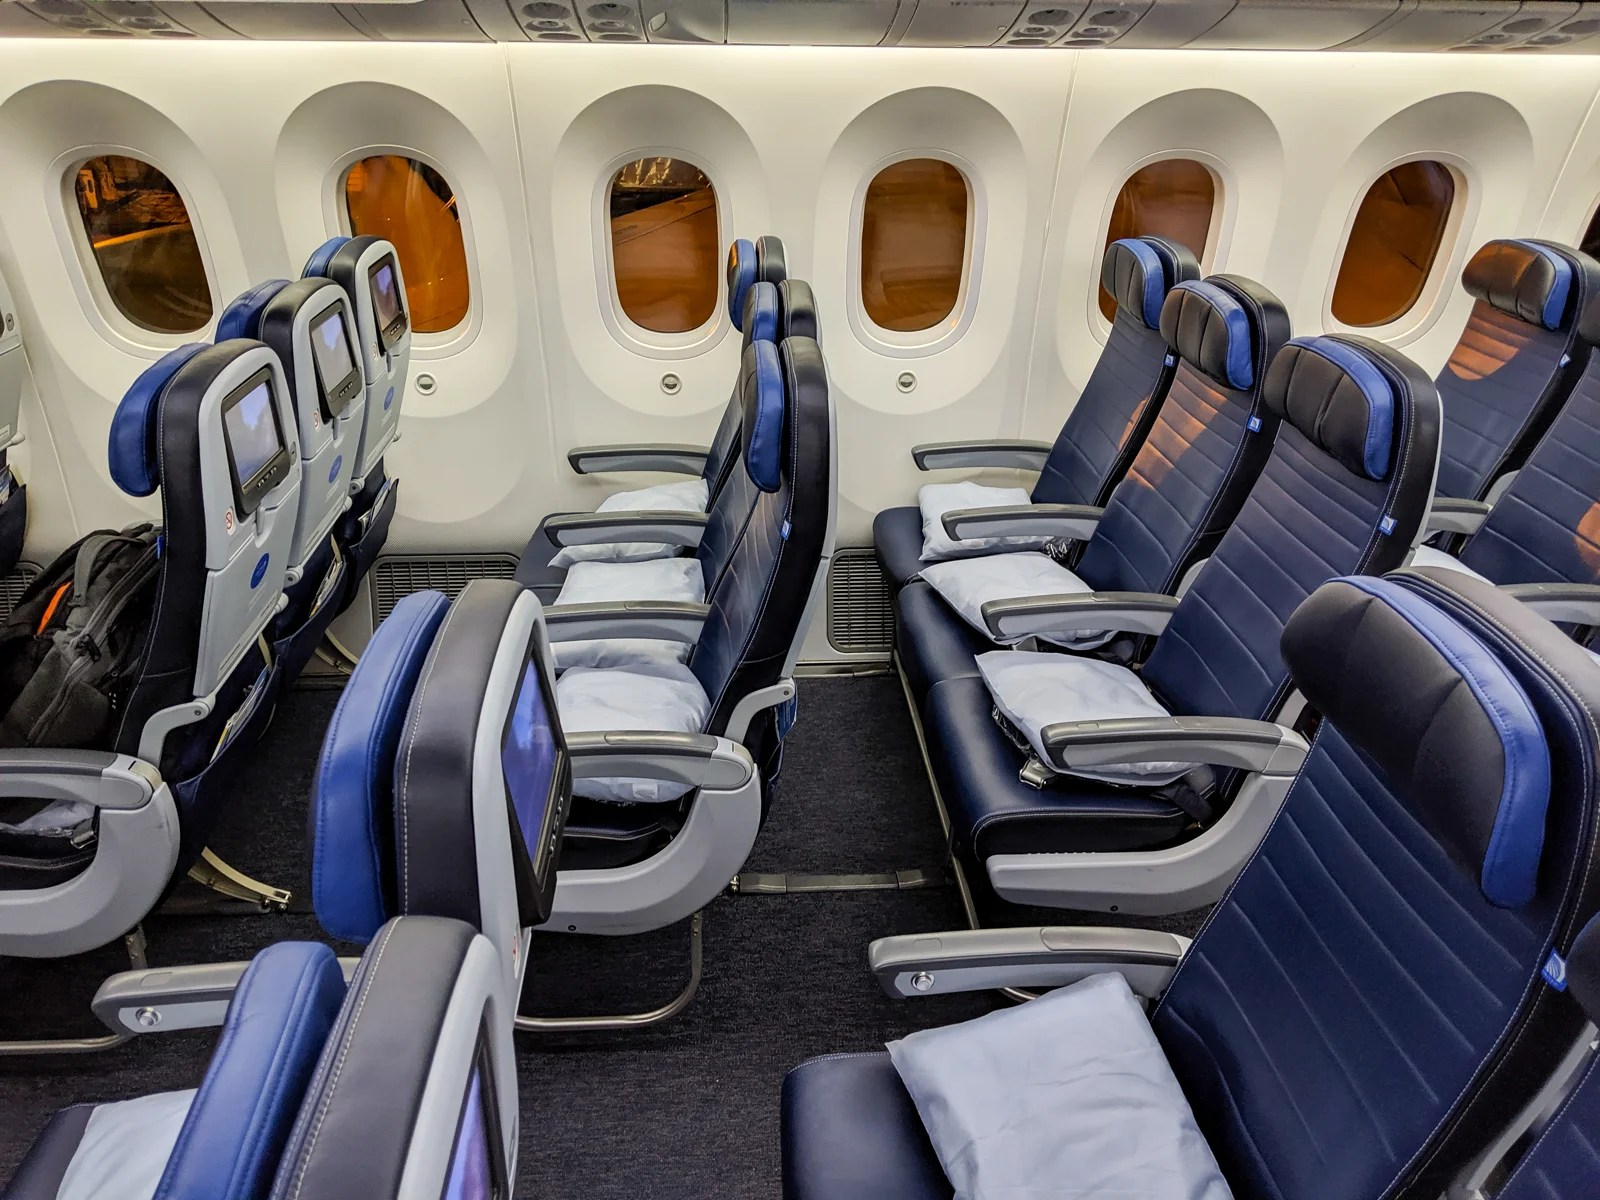 United awards from 6k points, Lufthansa first for 70k points with new transfer bonus